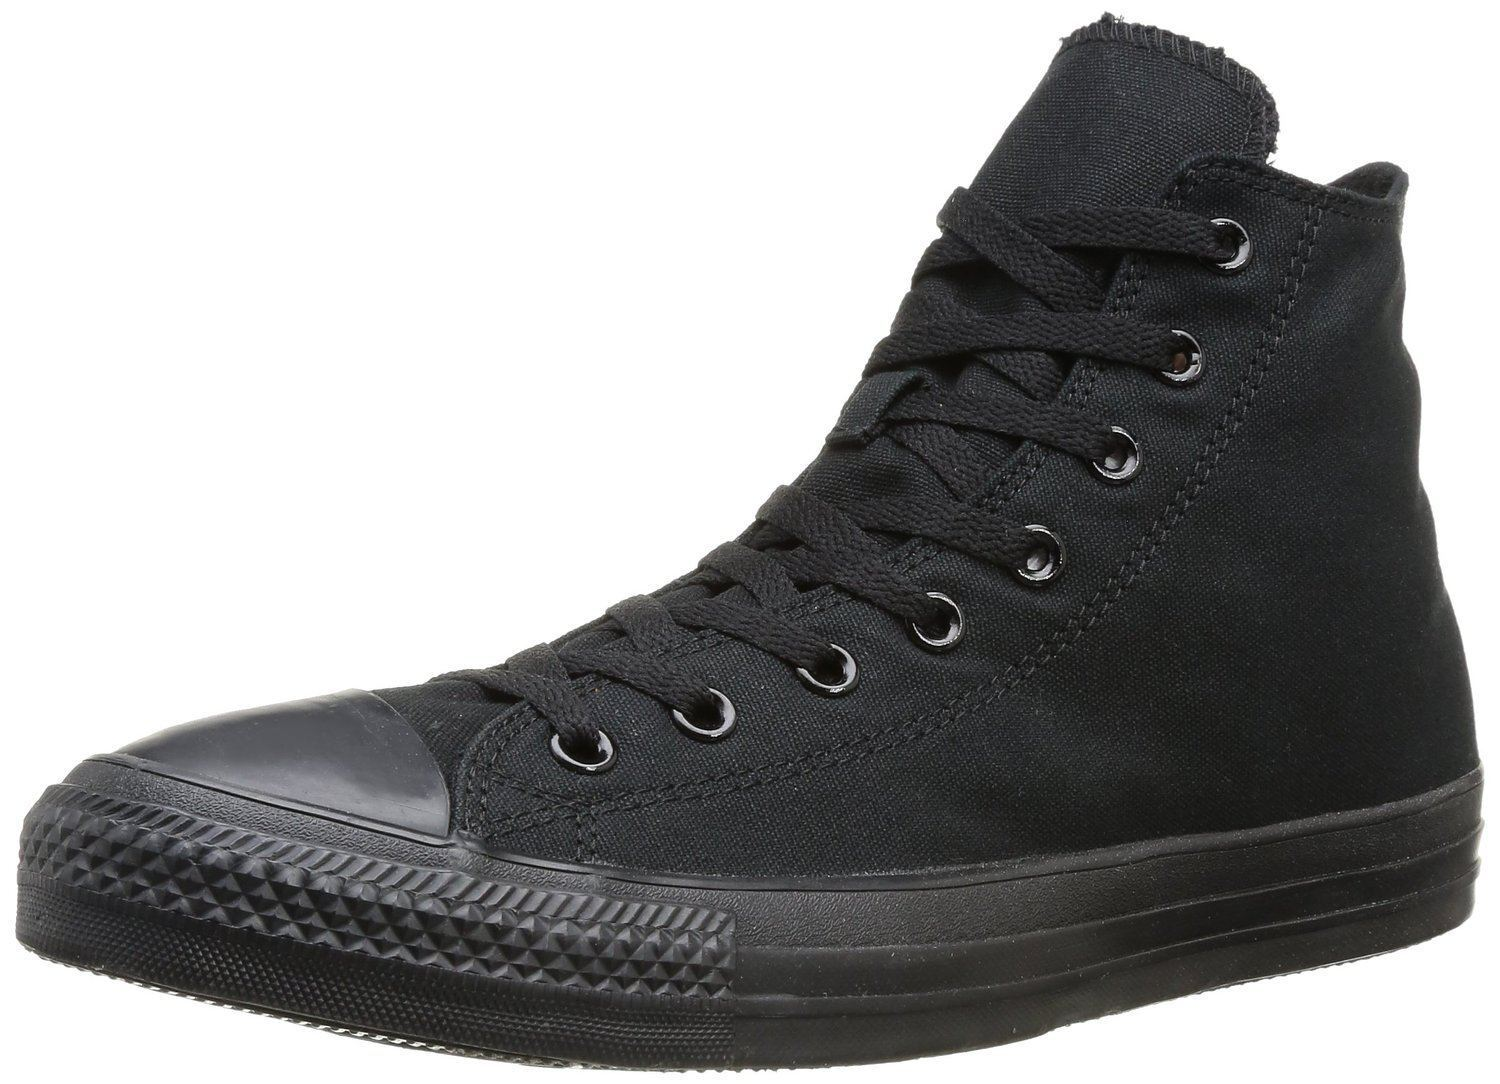 Converse Chuck Taylor All Star Black Mono Hi Unisex Trainers Boots